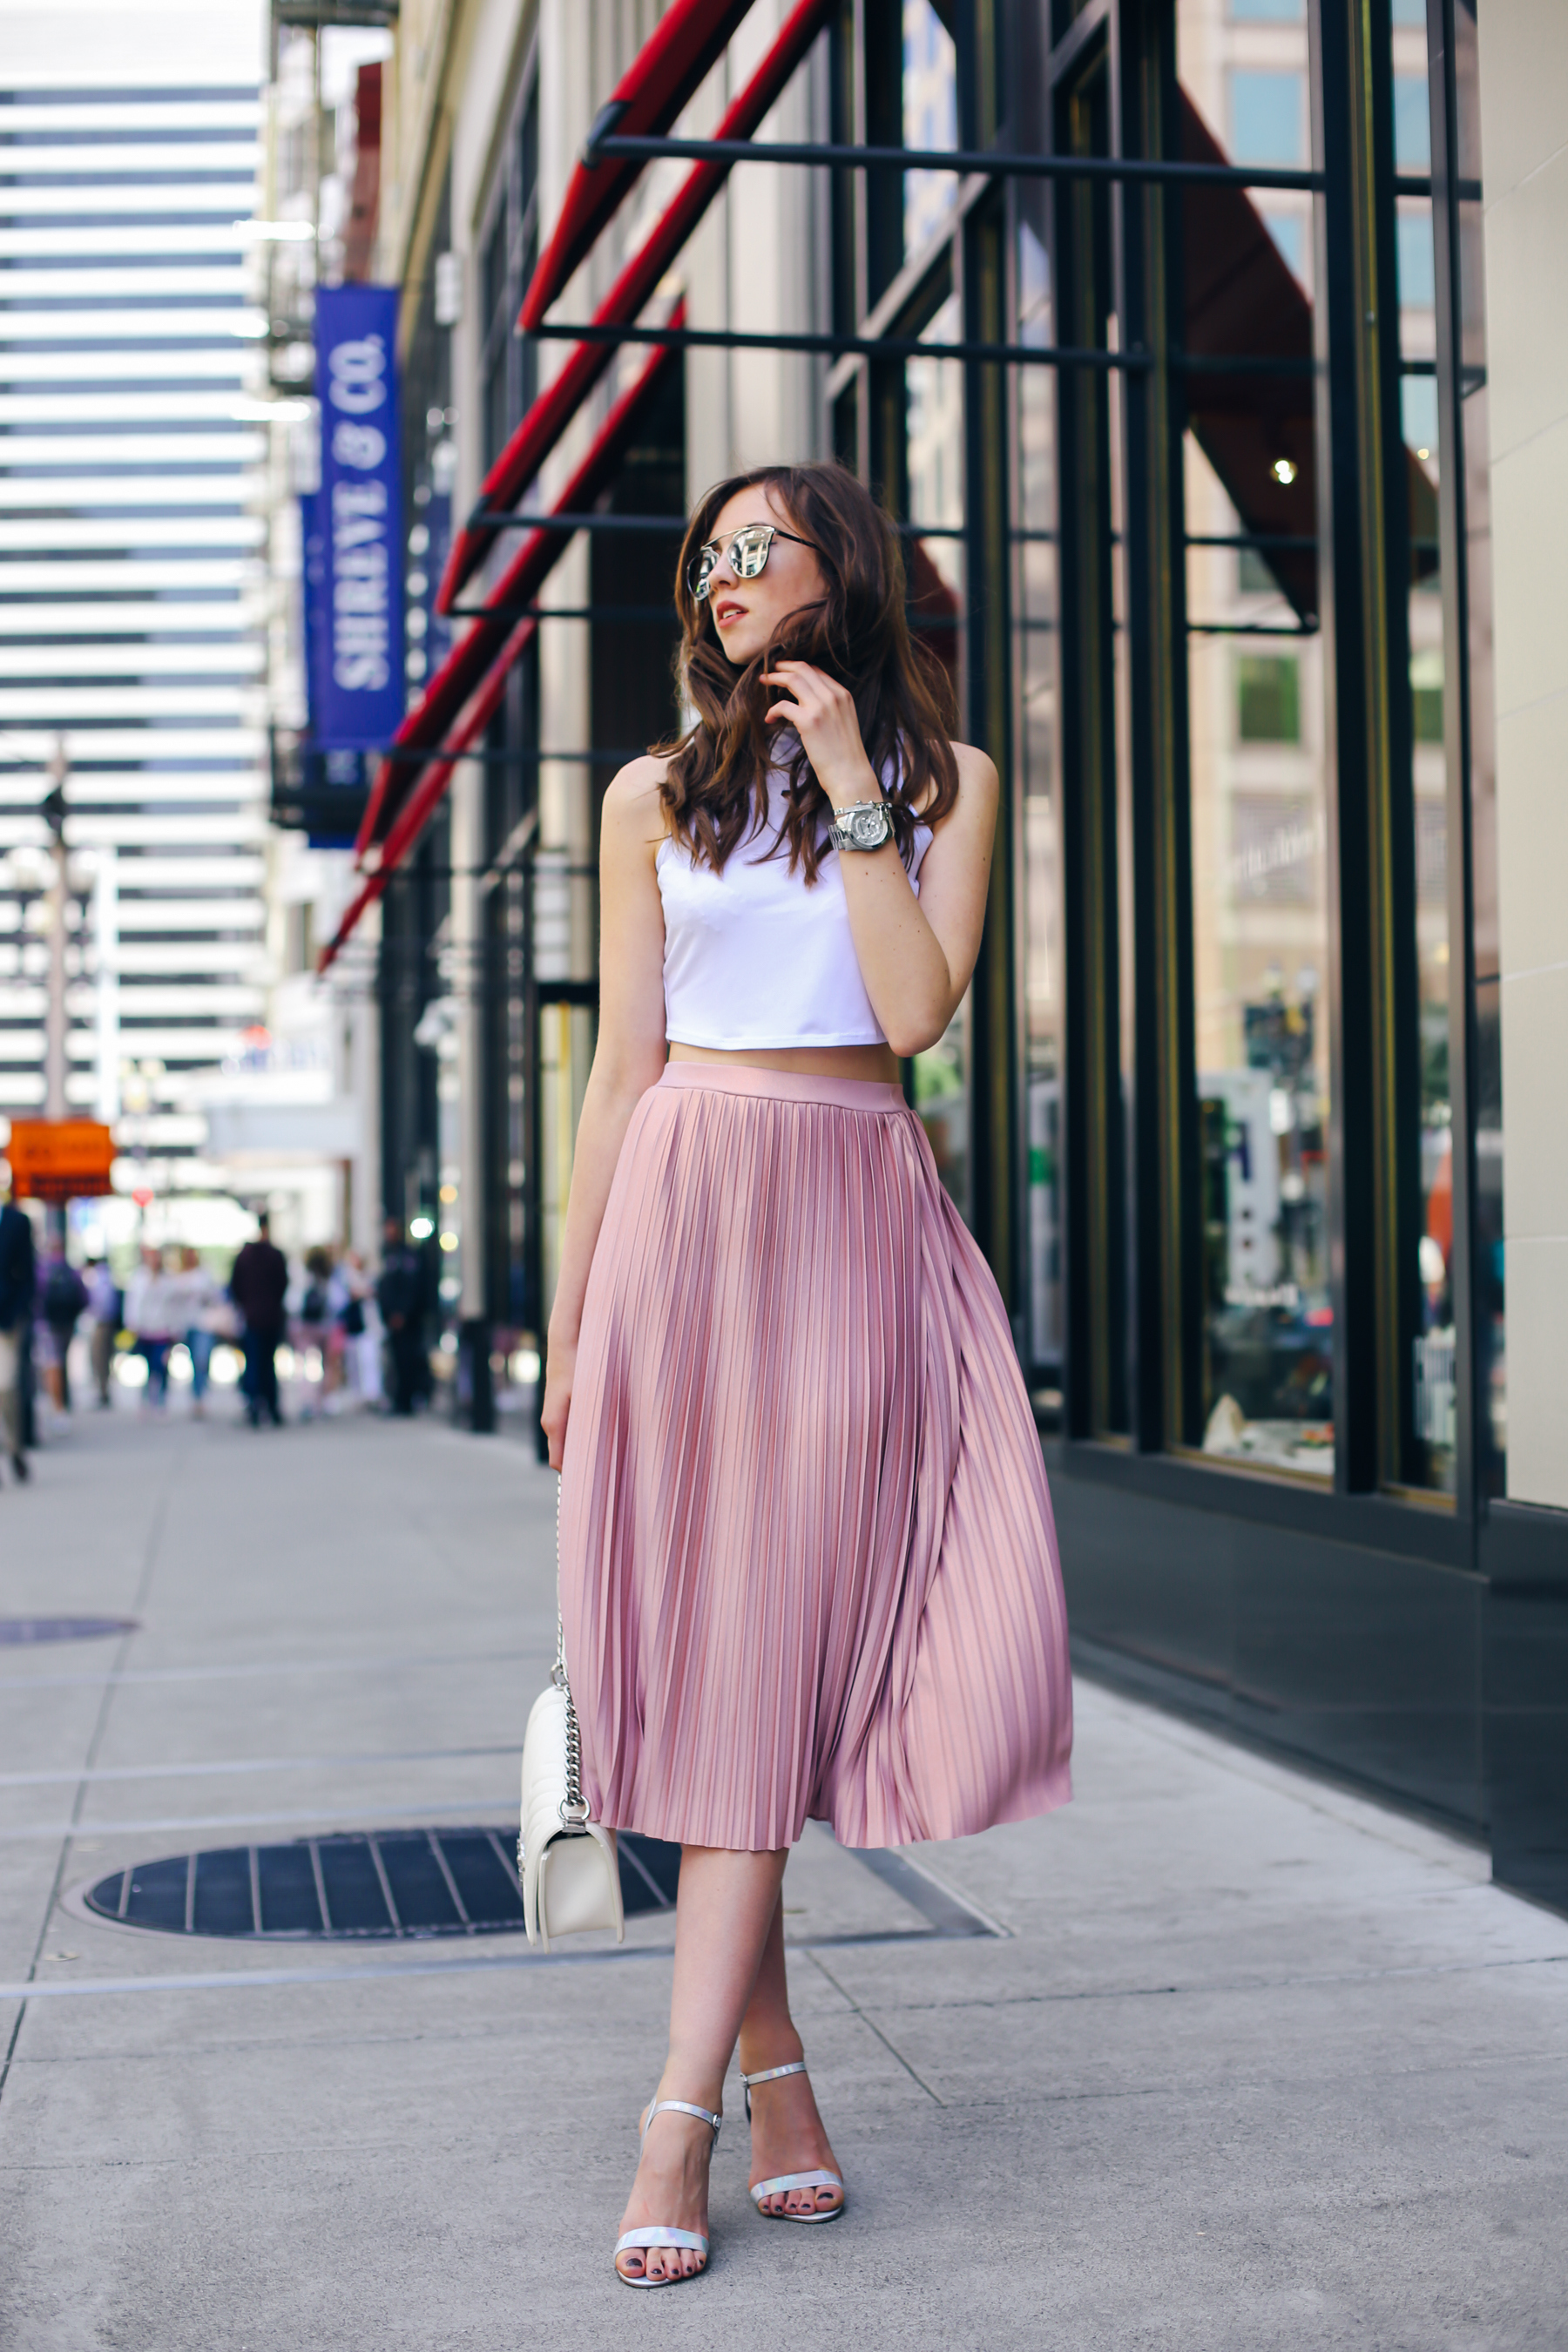 Barbora-Ondracova-FashioninmySoul-Fashion-Blogger-Photography-RyanbyRyanChua-7452